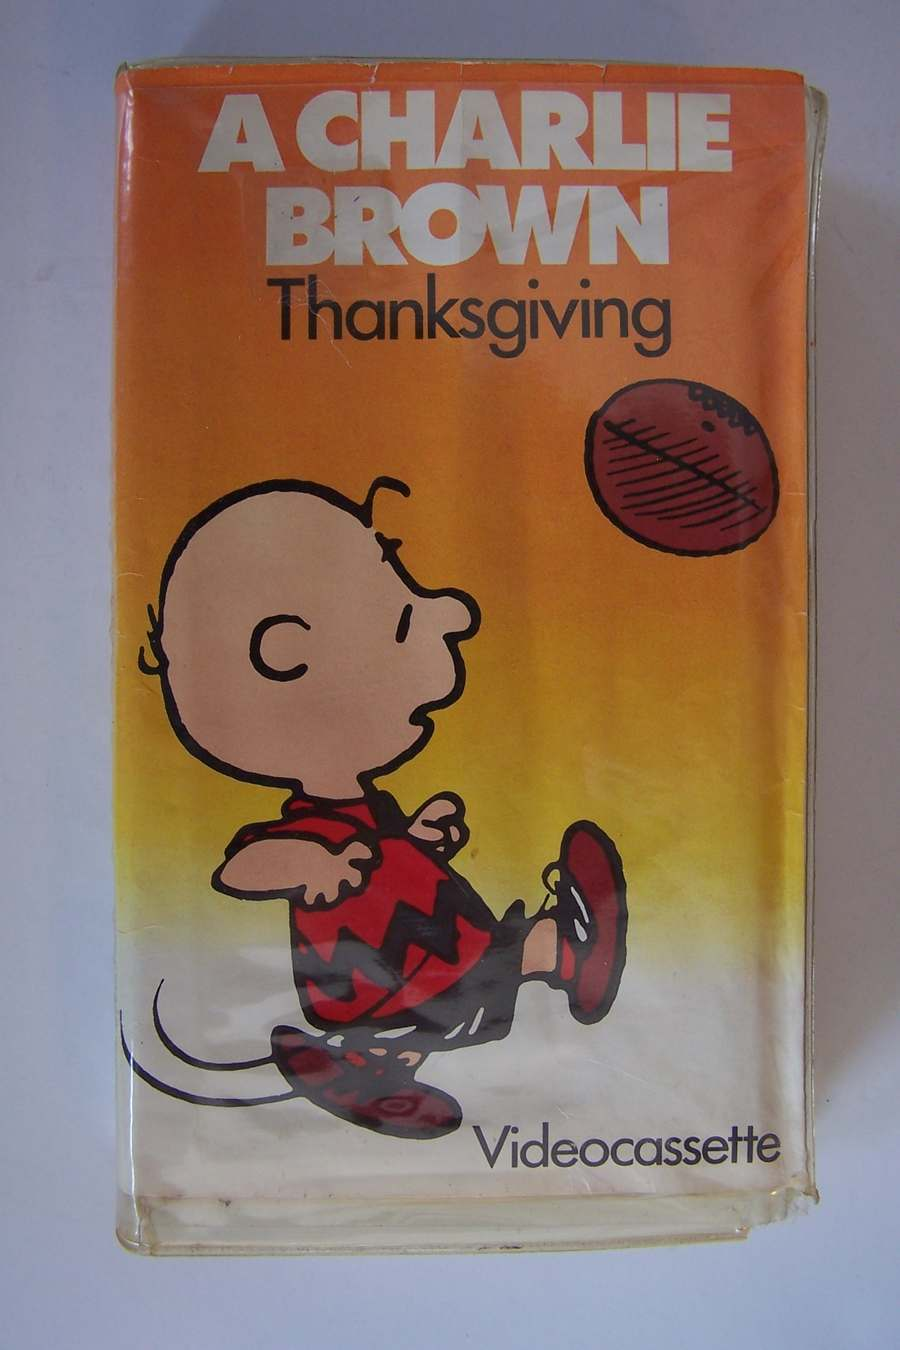 Peanuts: A Charlie Brown Thanksgiving VHS Videocassette